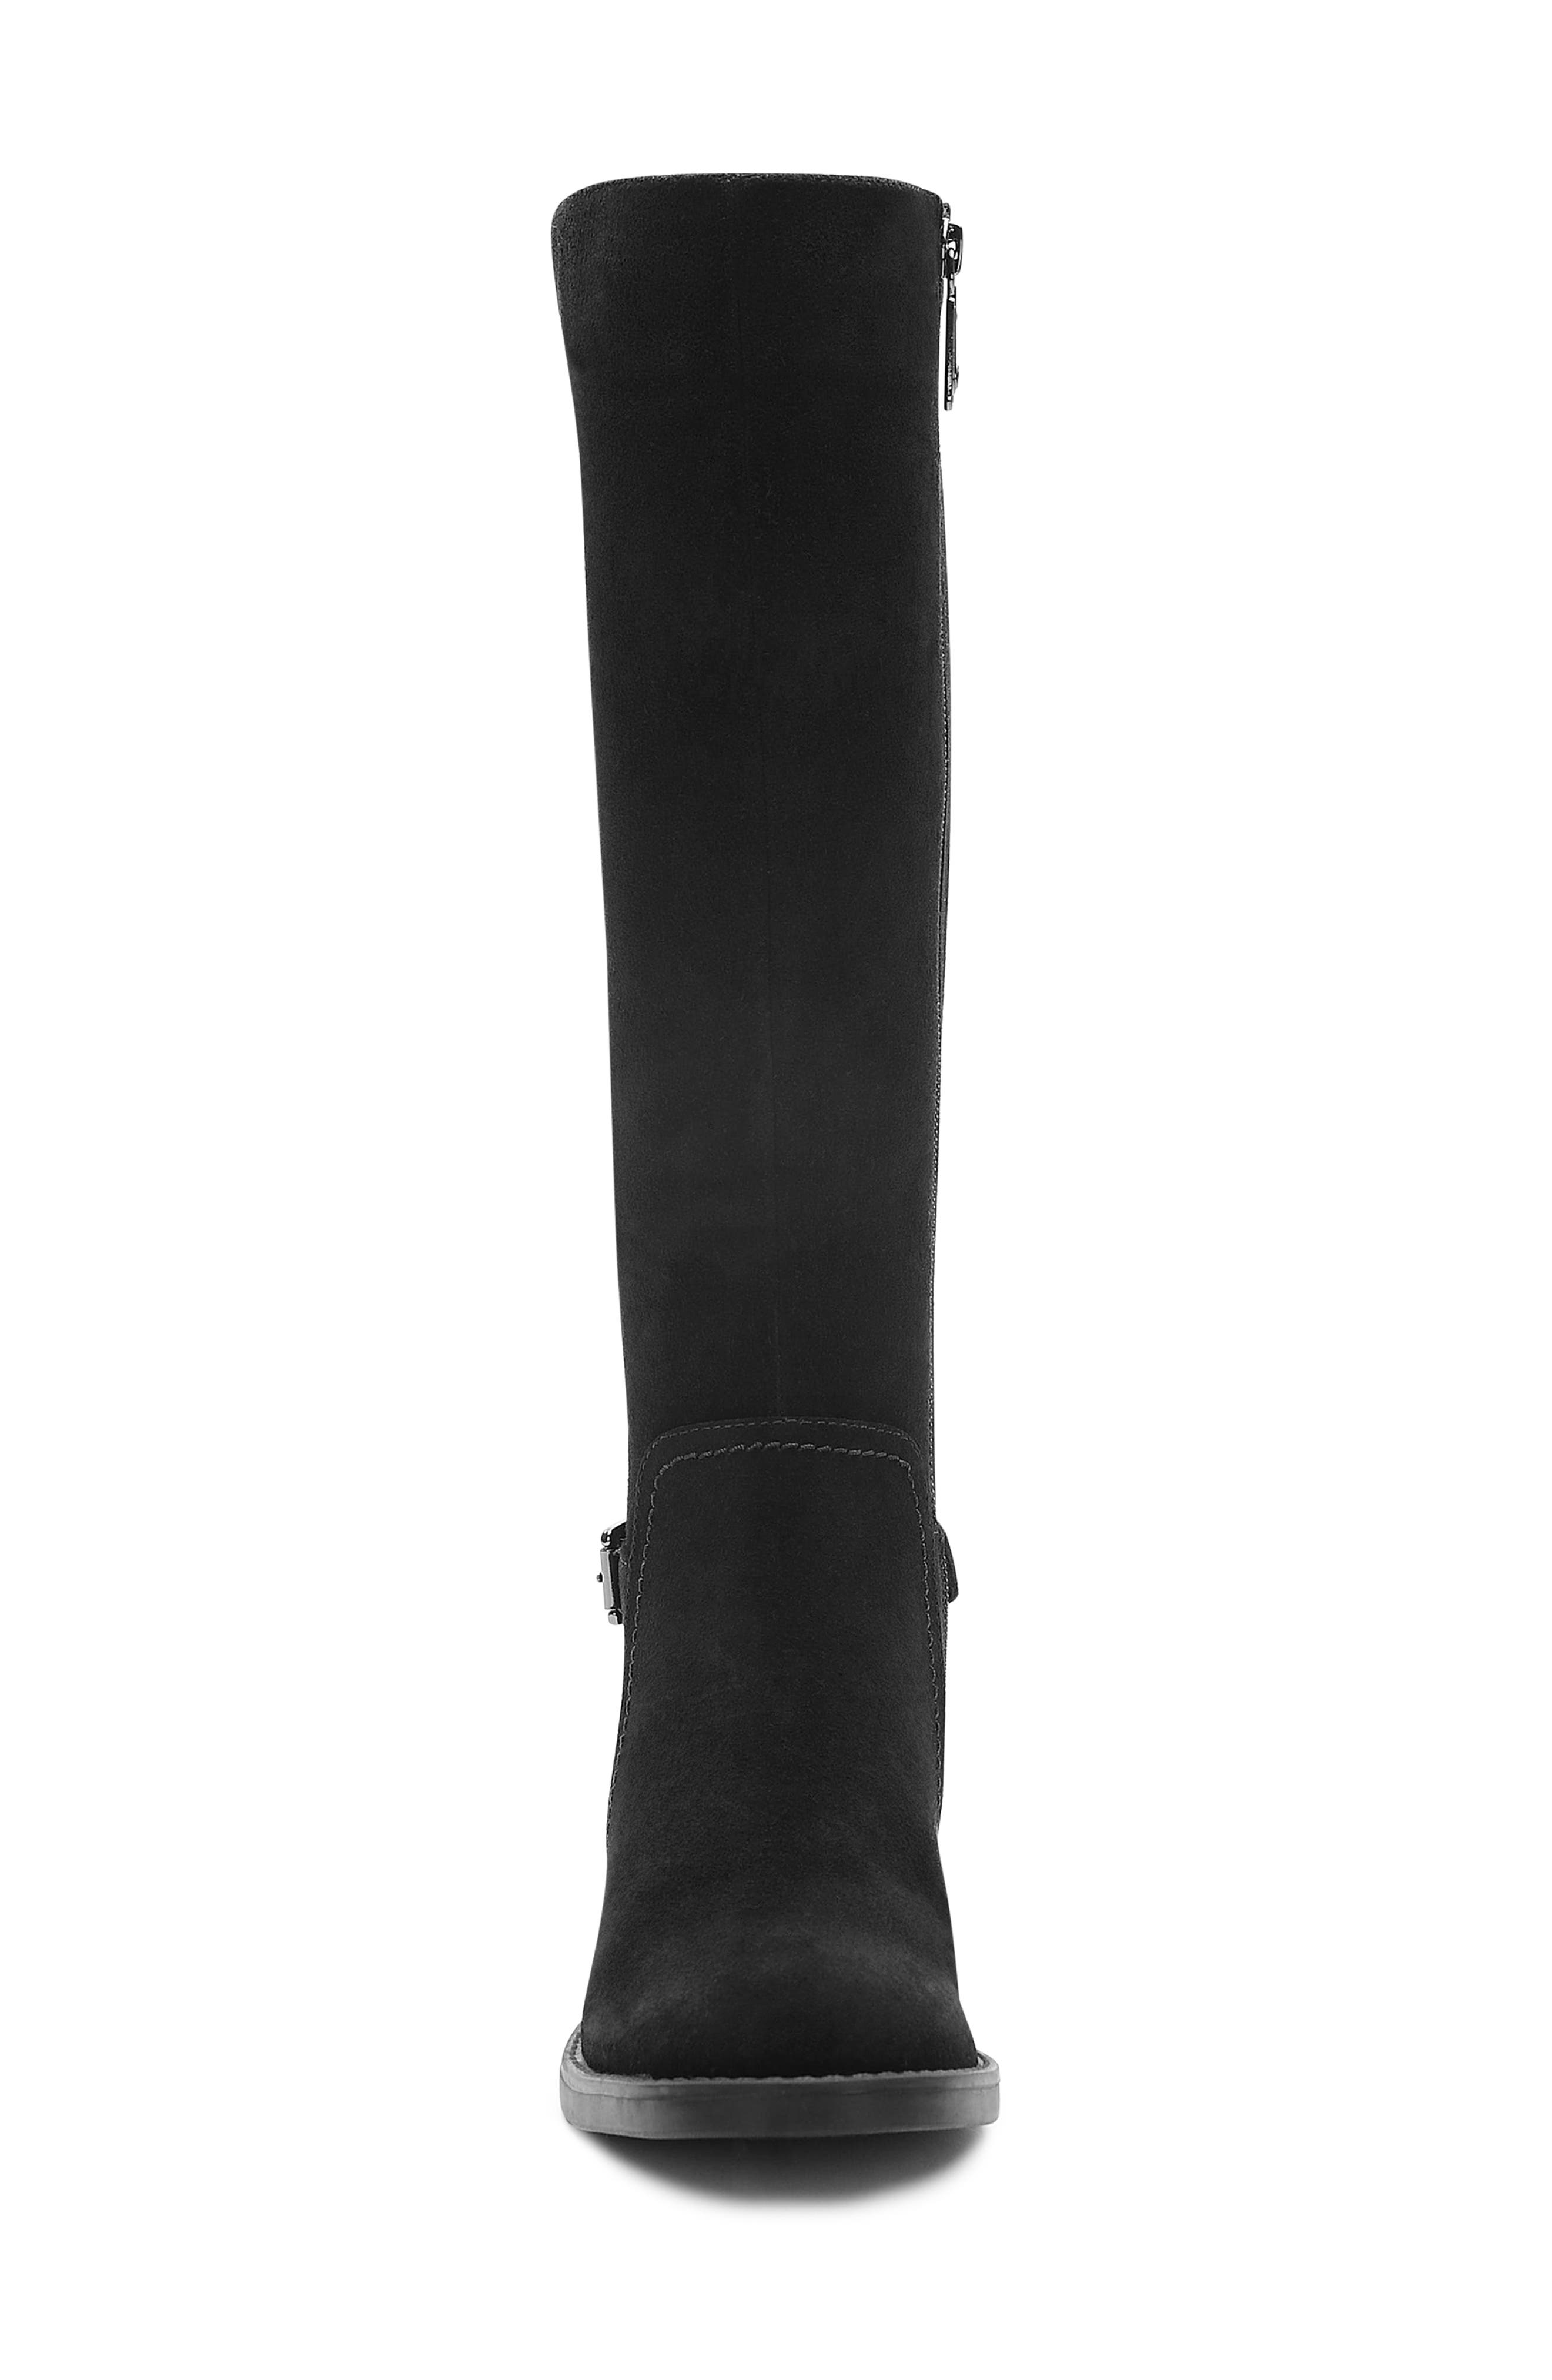 Evie Riding Waterproof Boot,                             Alternate thumbnail 4, color,                             BLACK SUEDE